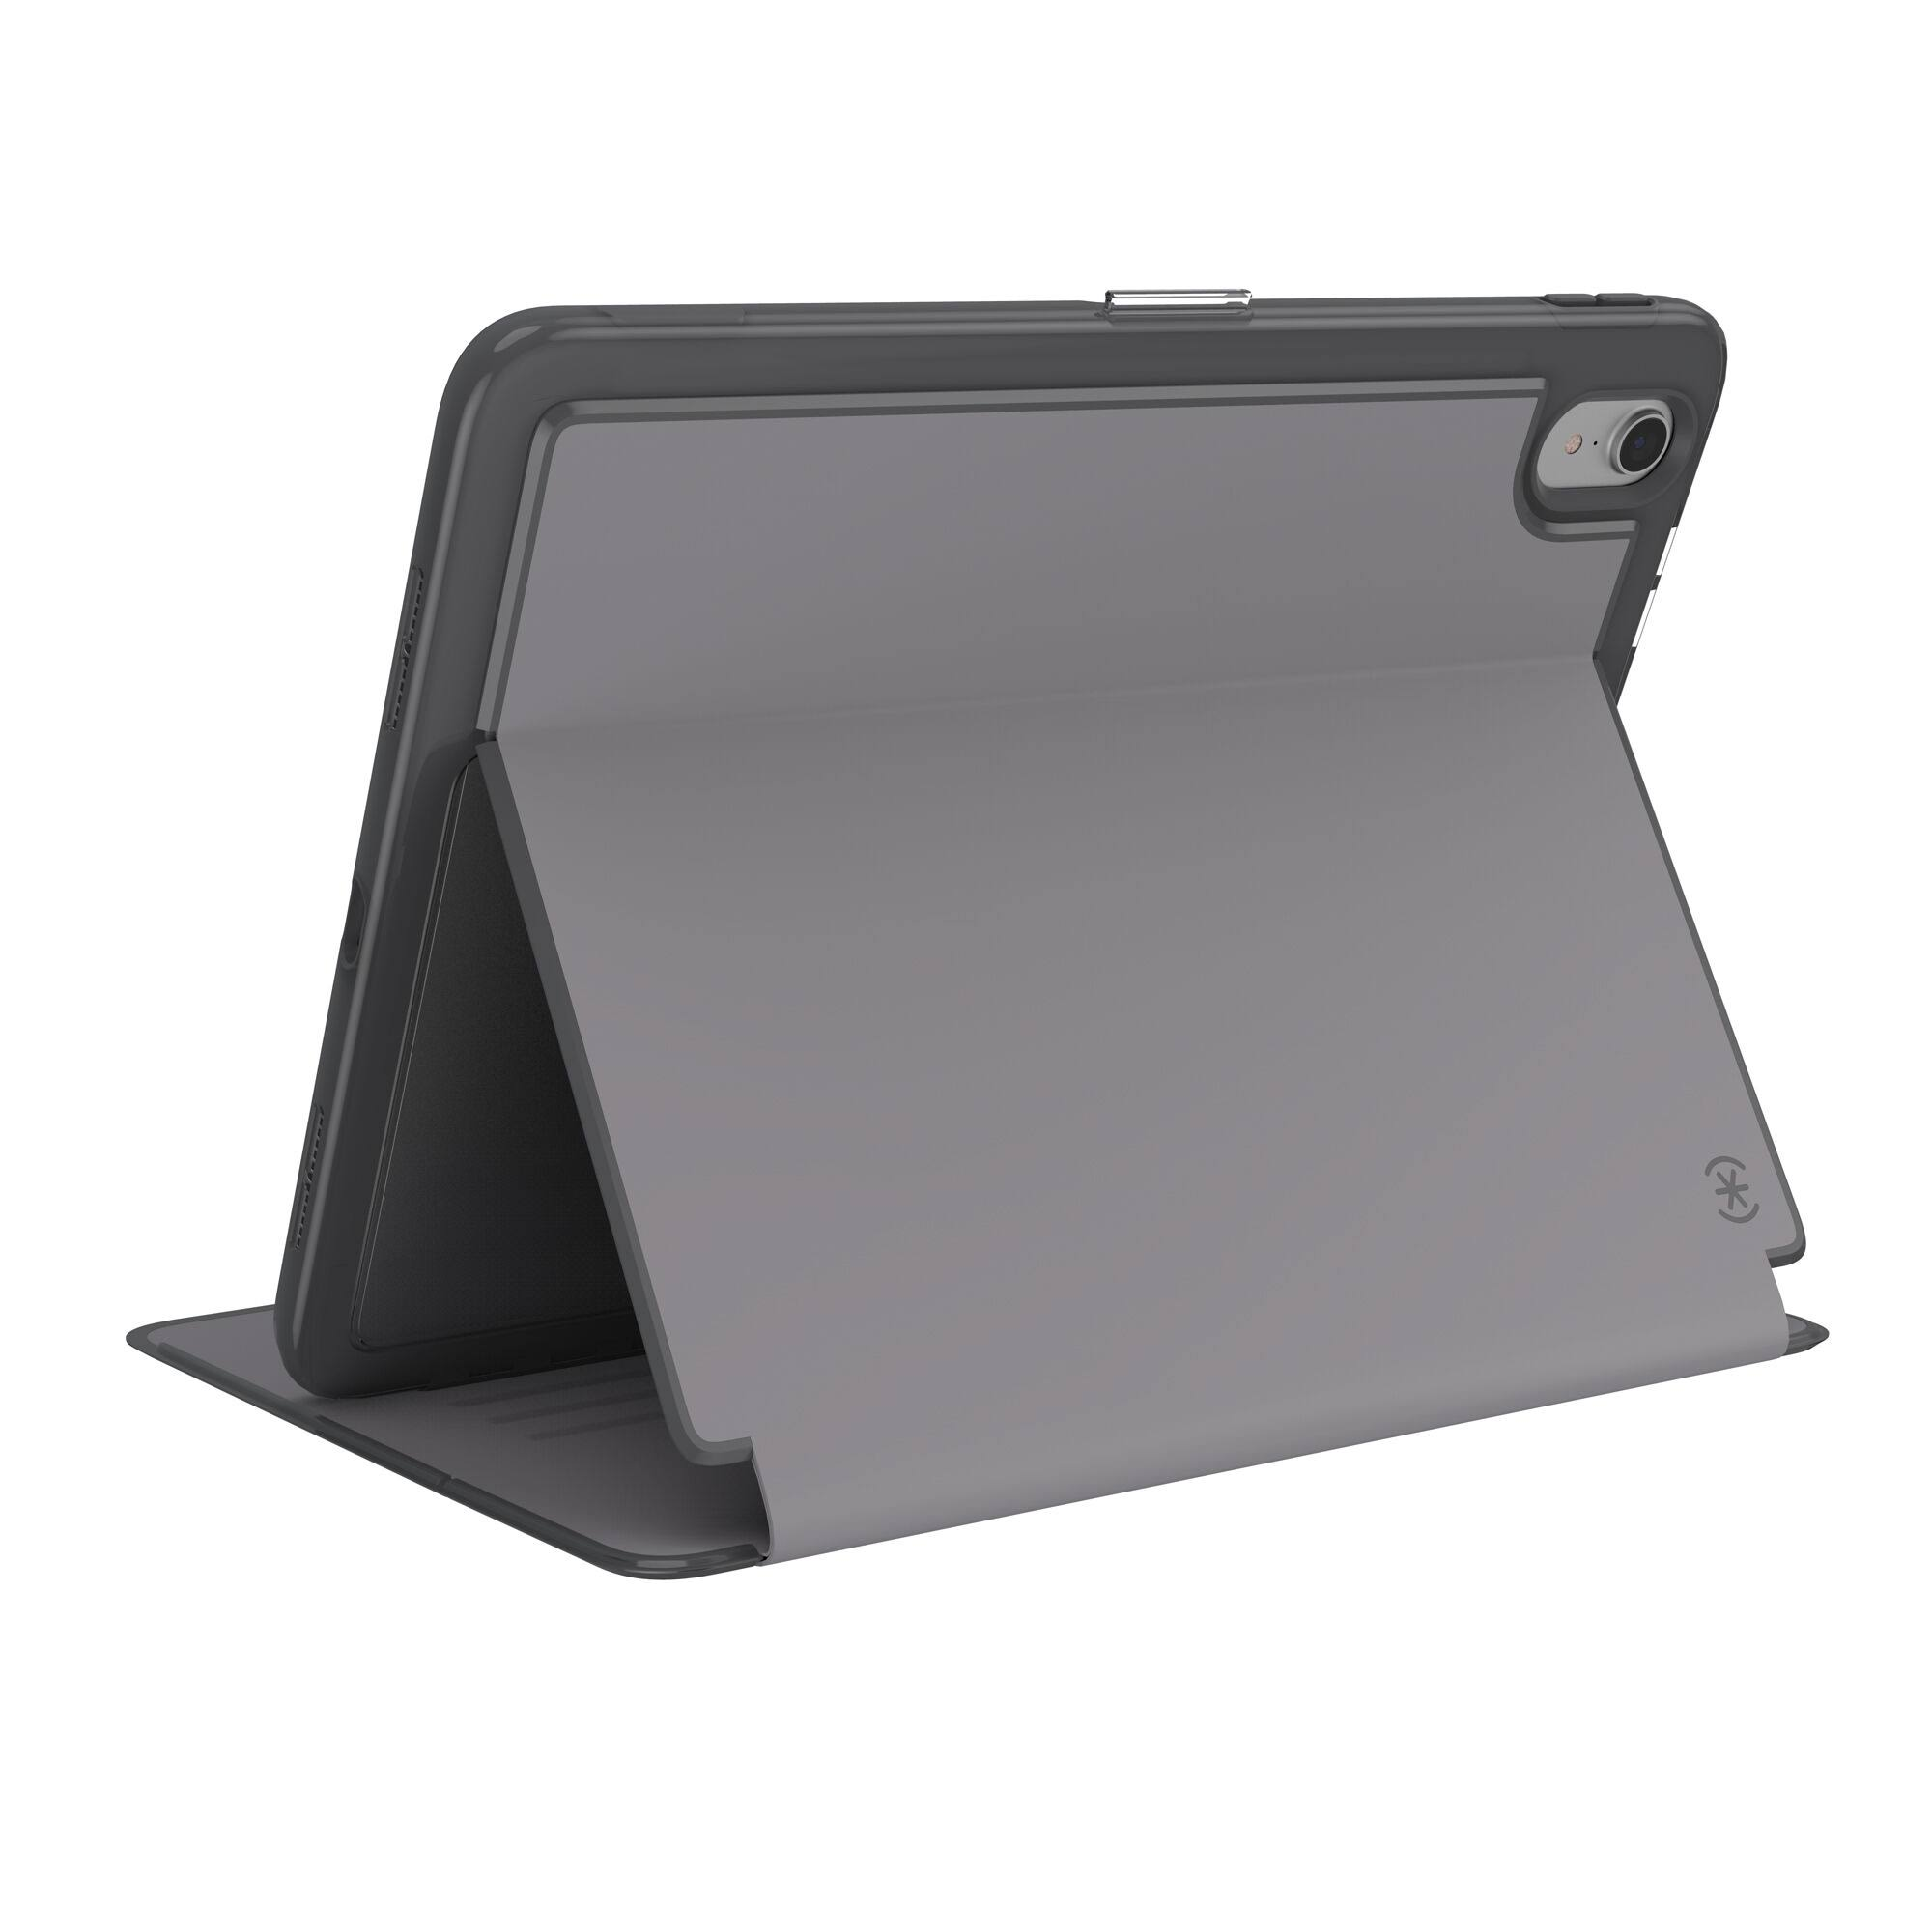 Speck Presidio Pro Folio Flip Cover for Apple 11-inch iPad Pro - Slate Gray